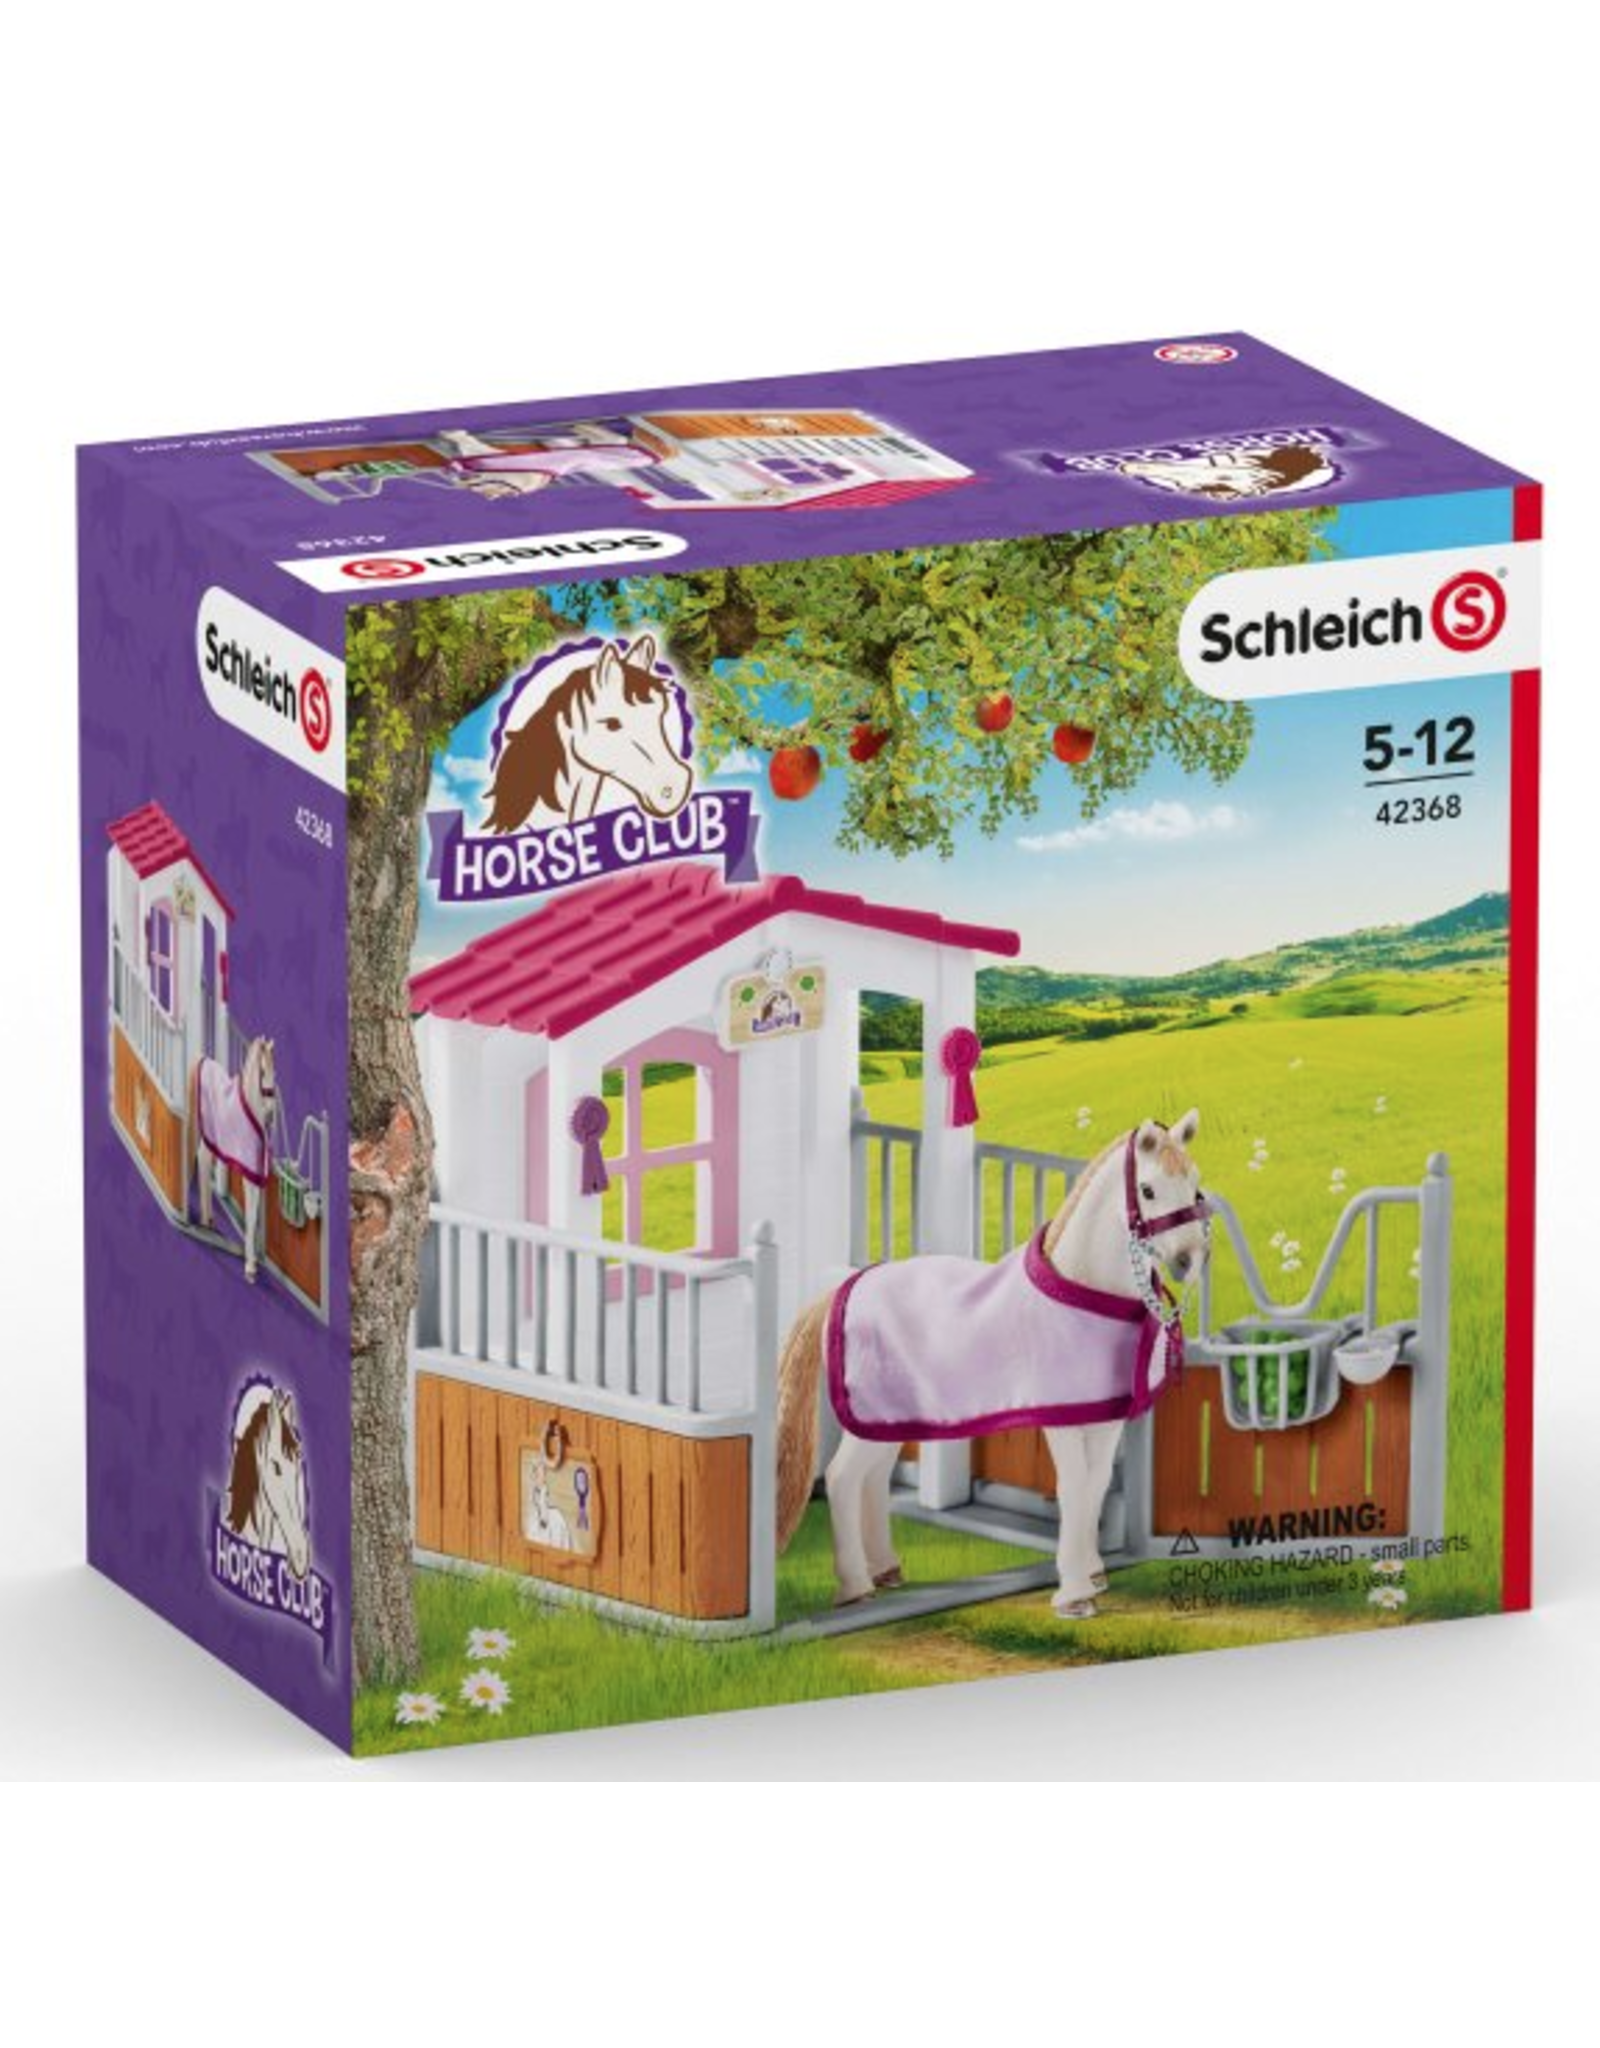 Schleich® Horse Club Horse Stall w Lusitano Horses